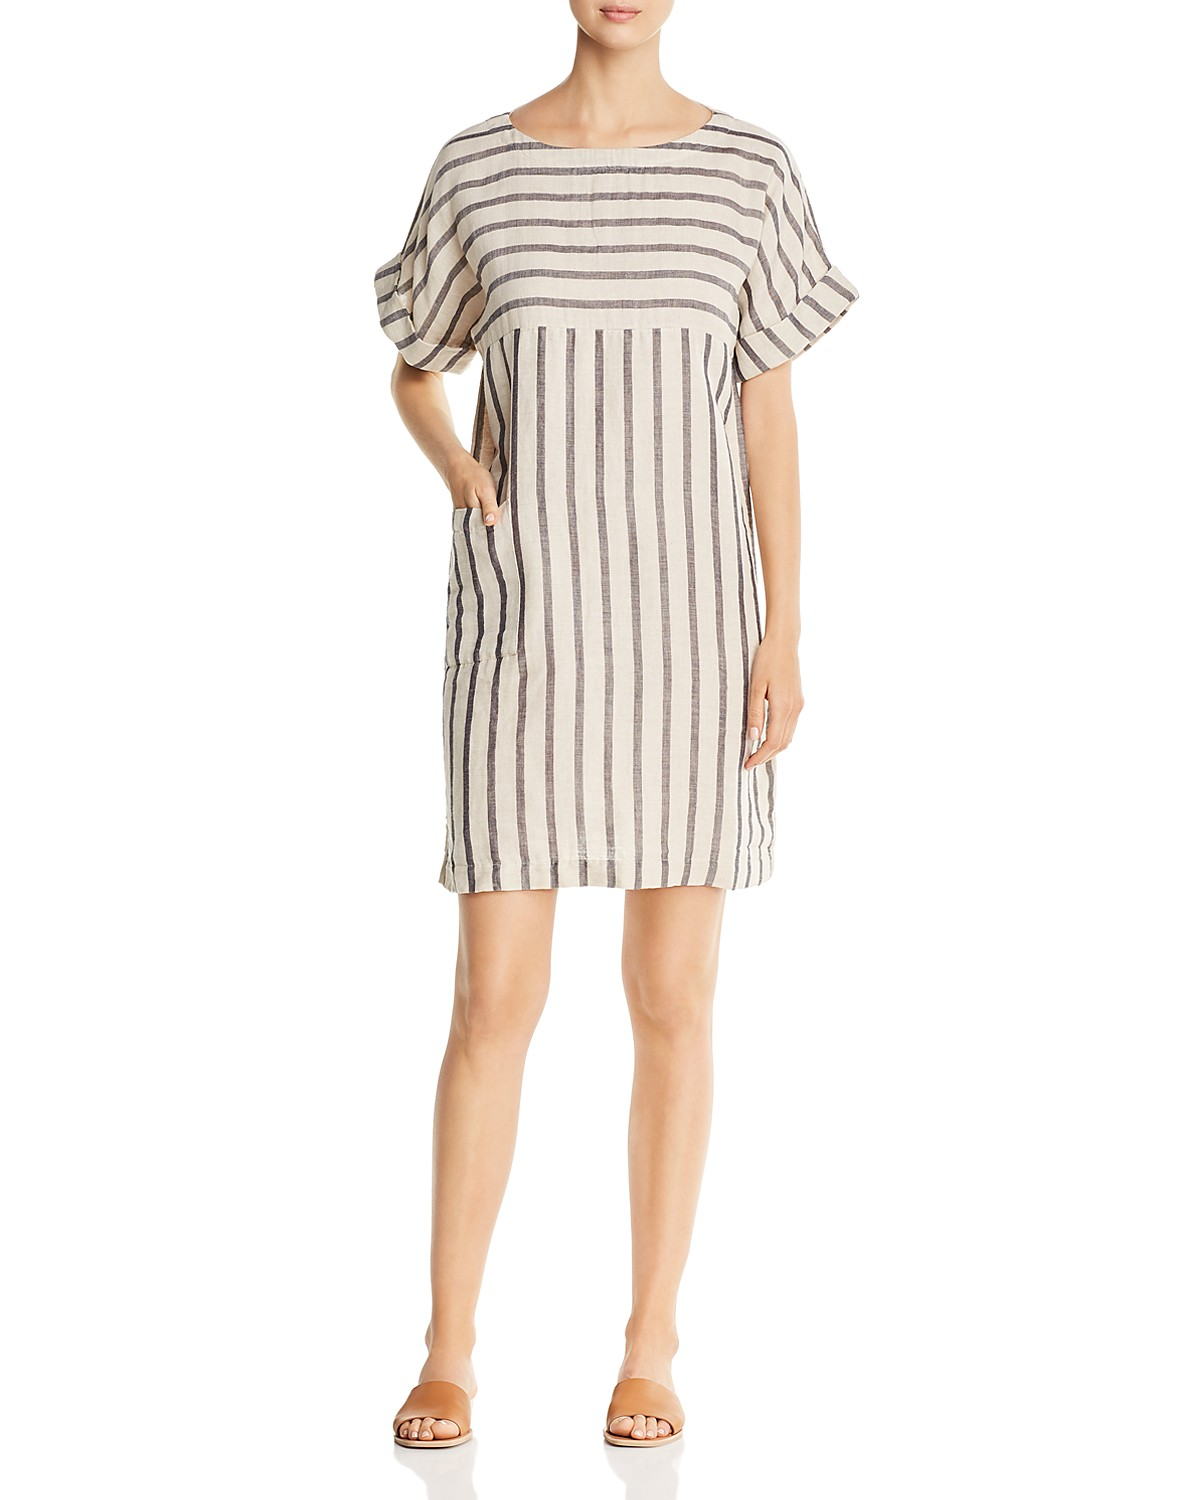 Petite Ave | Clothing for Women 5\'4\'\' and Under